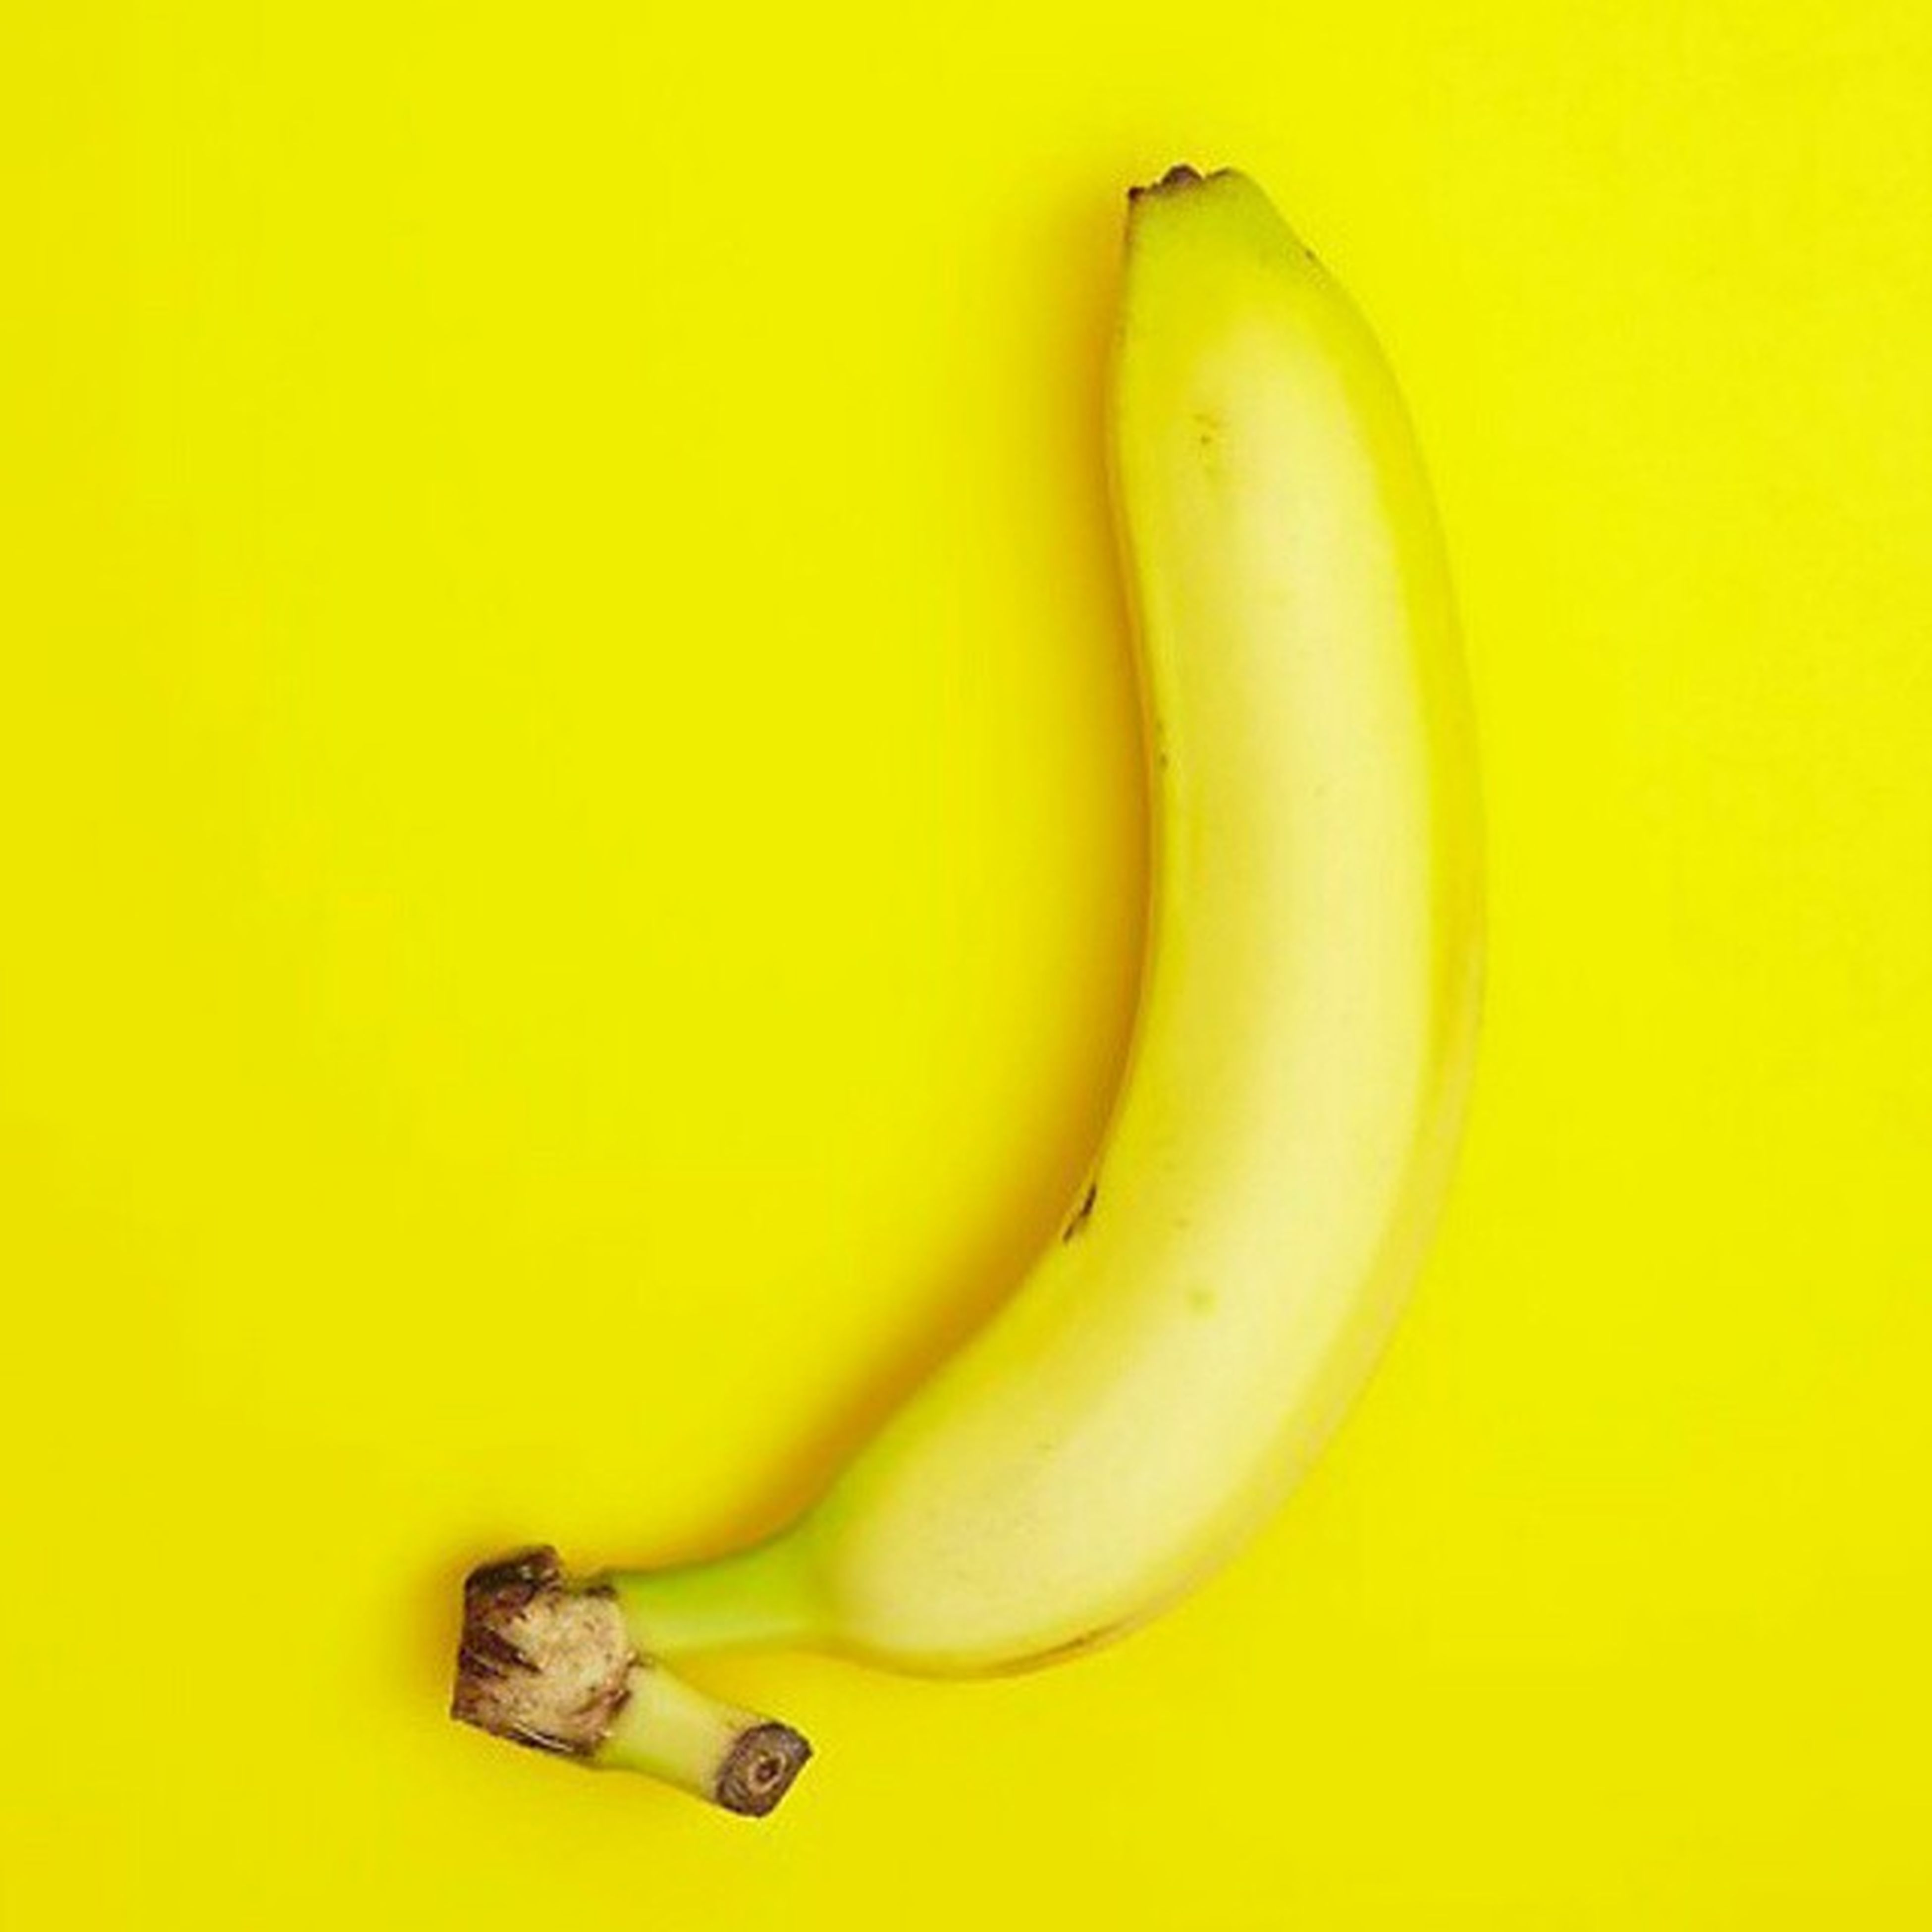 yellow, indoors, still life, studio shot, close-up, single object, white background, healthy eating, food and drink, fruit, banana, wall - building feature, no people, table, food, two objects, copy space, high angle view, freshness, wall